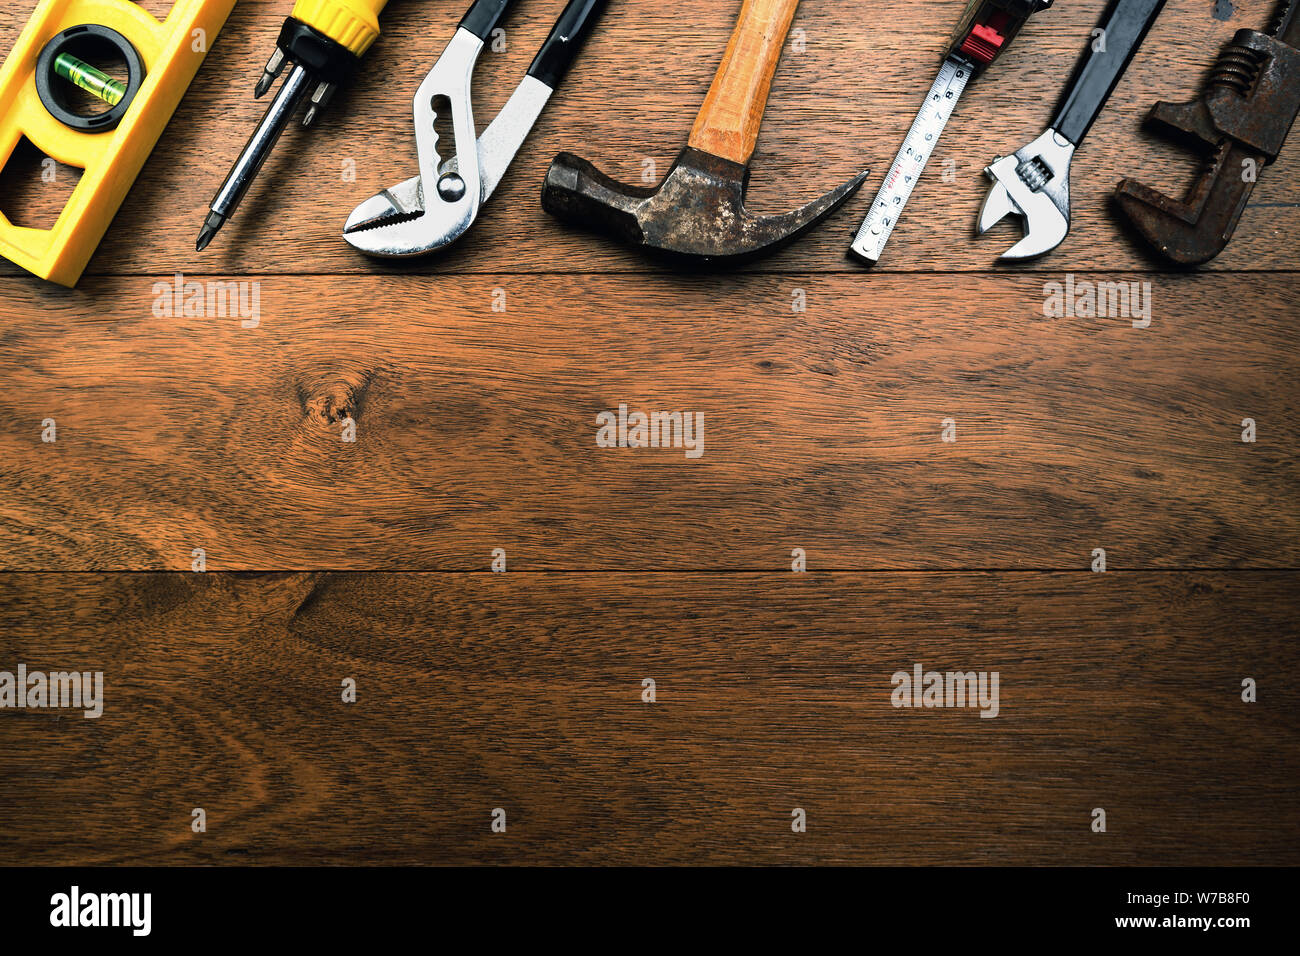 Grungy rusty craftsmen Tools like water scale, pliers, screwdriver, Hammer and tape measure on wooden planks with room for writing Stock Photo